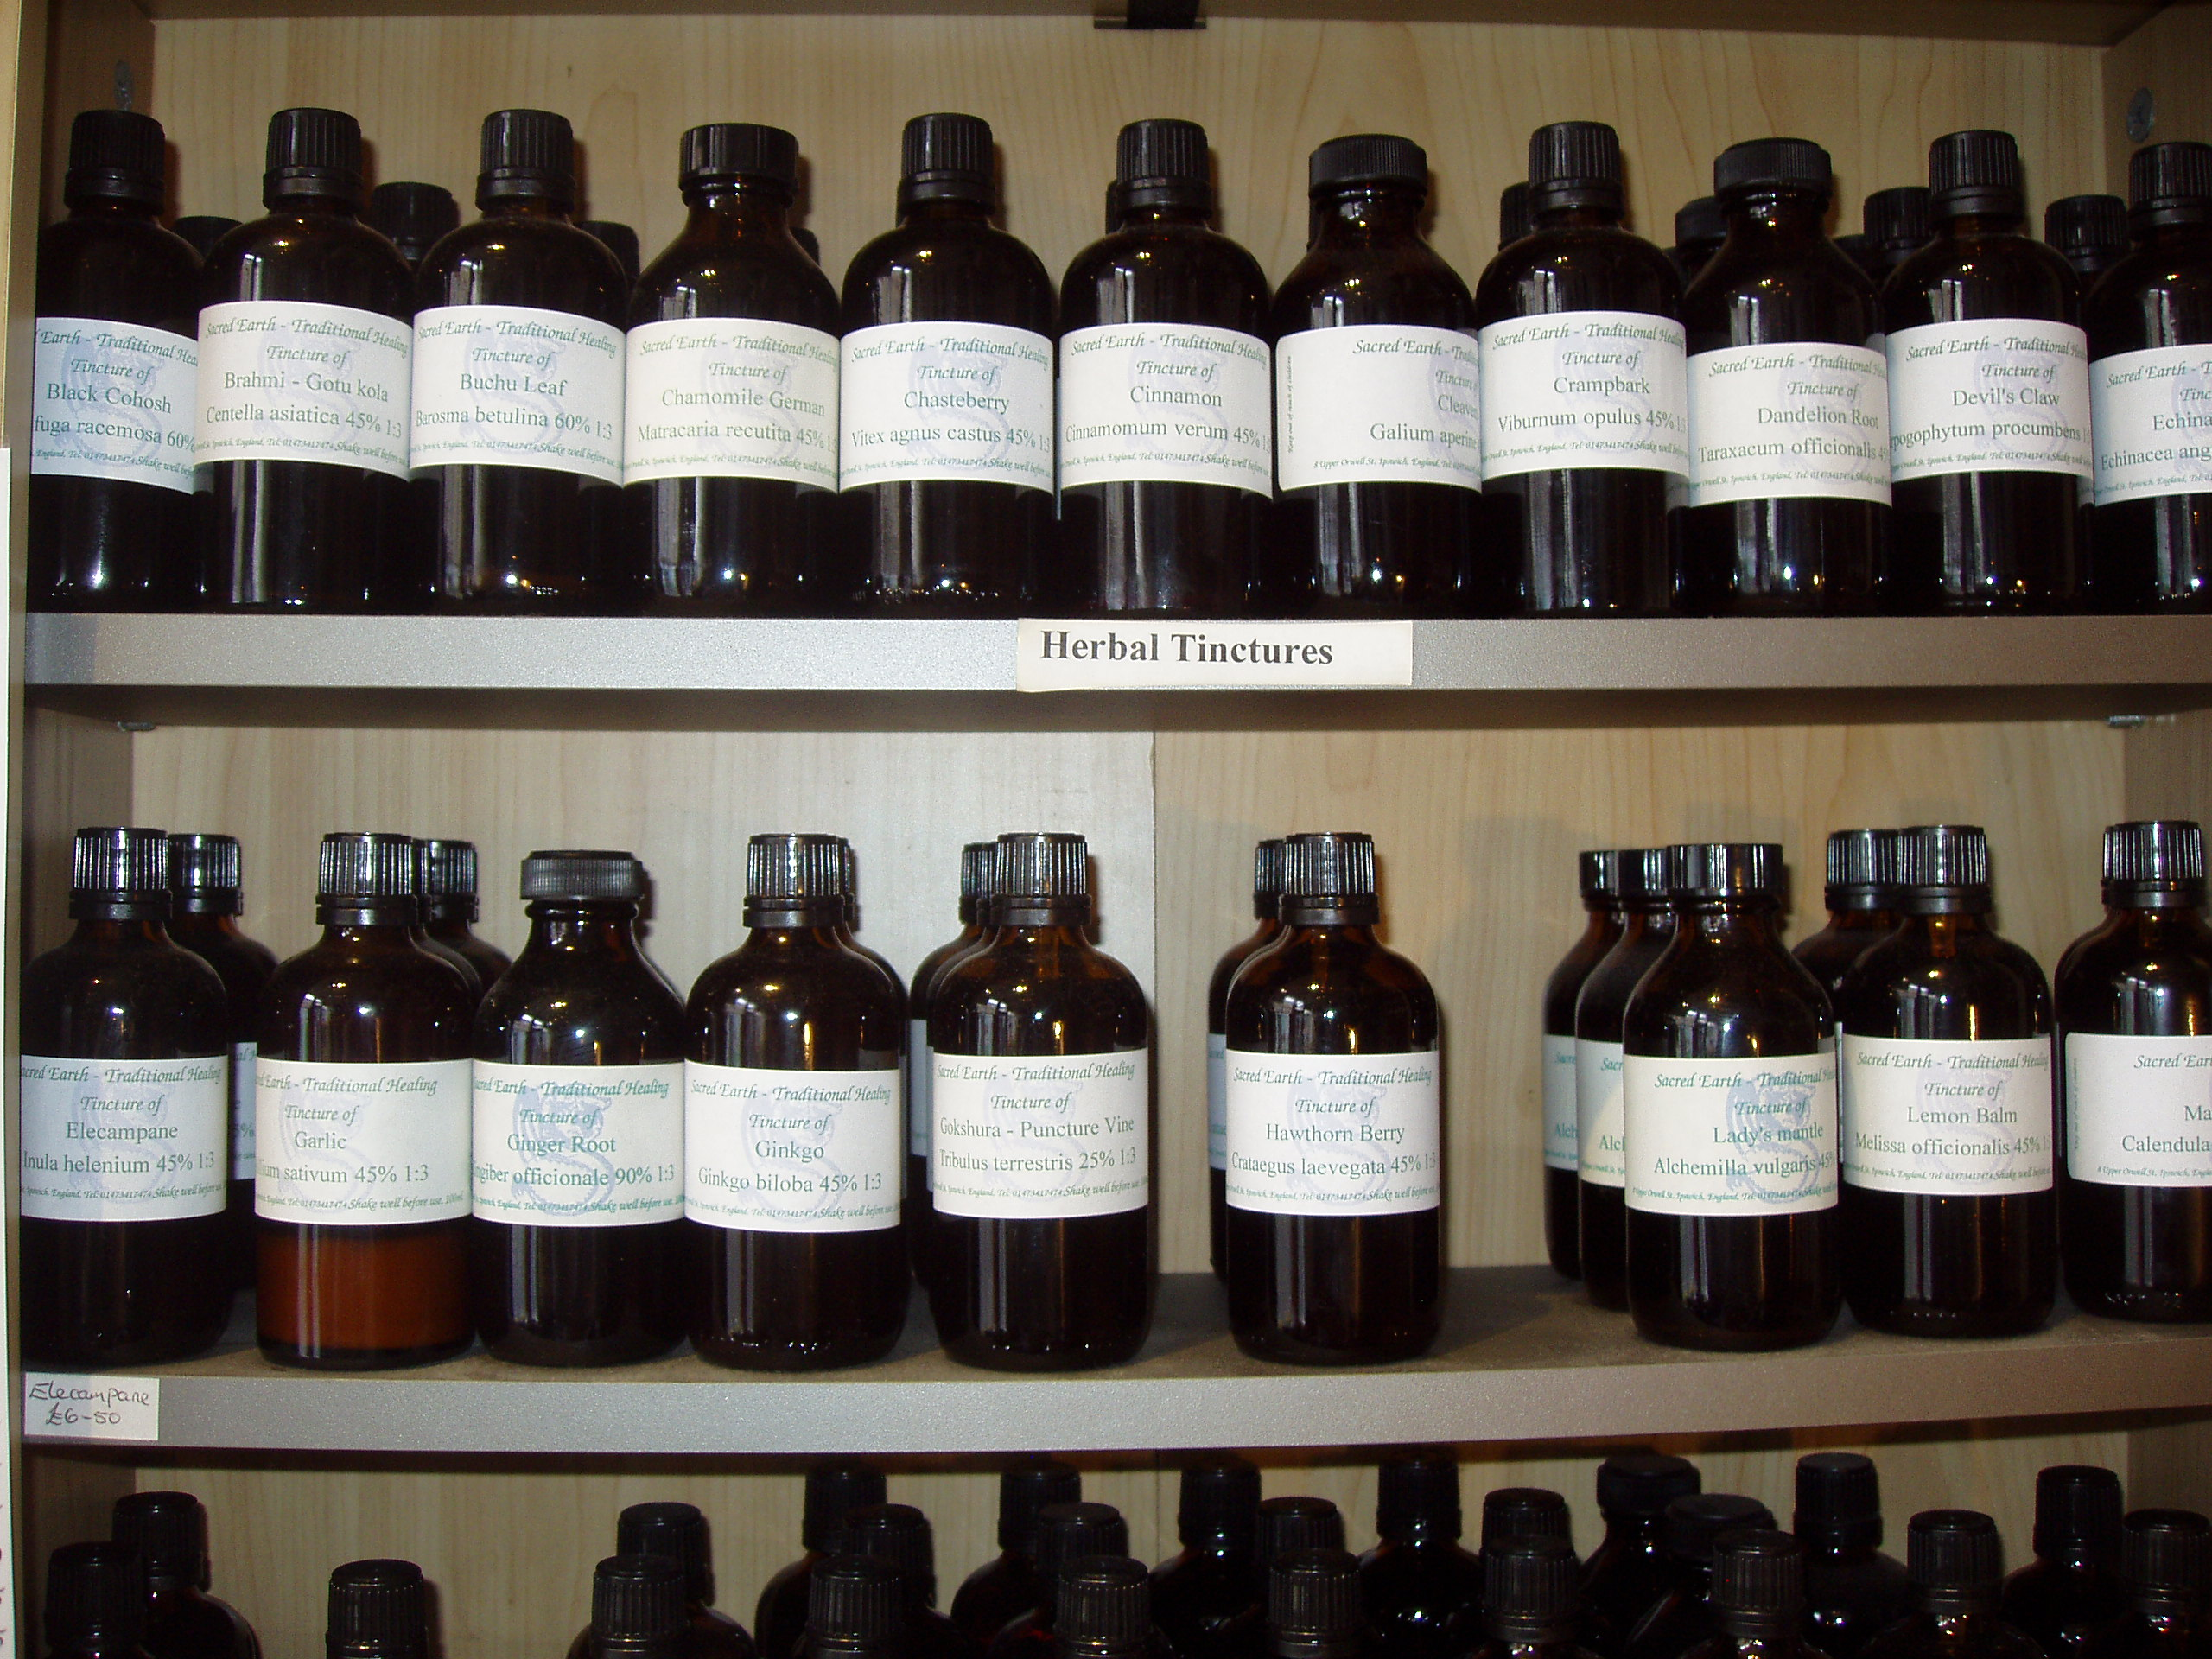 Herbal Tinctures - Crampbark